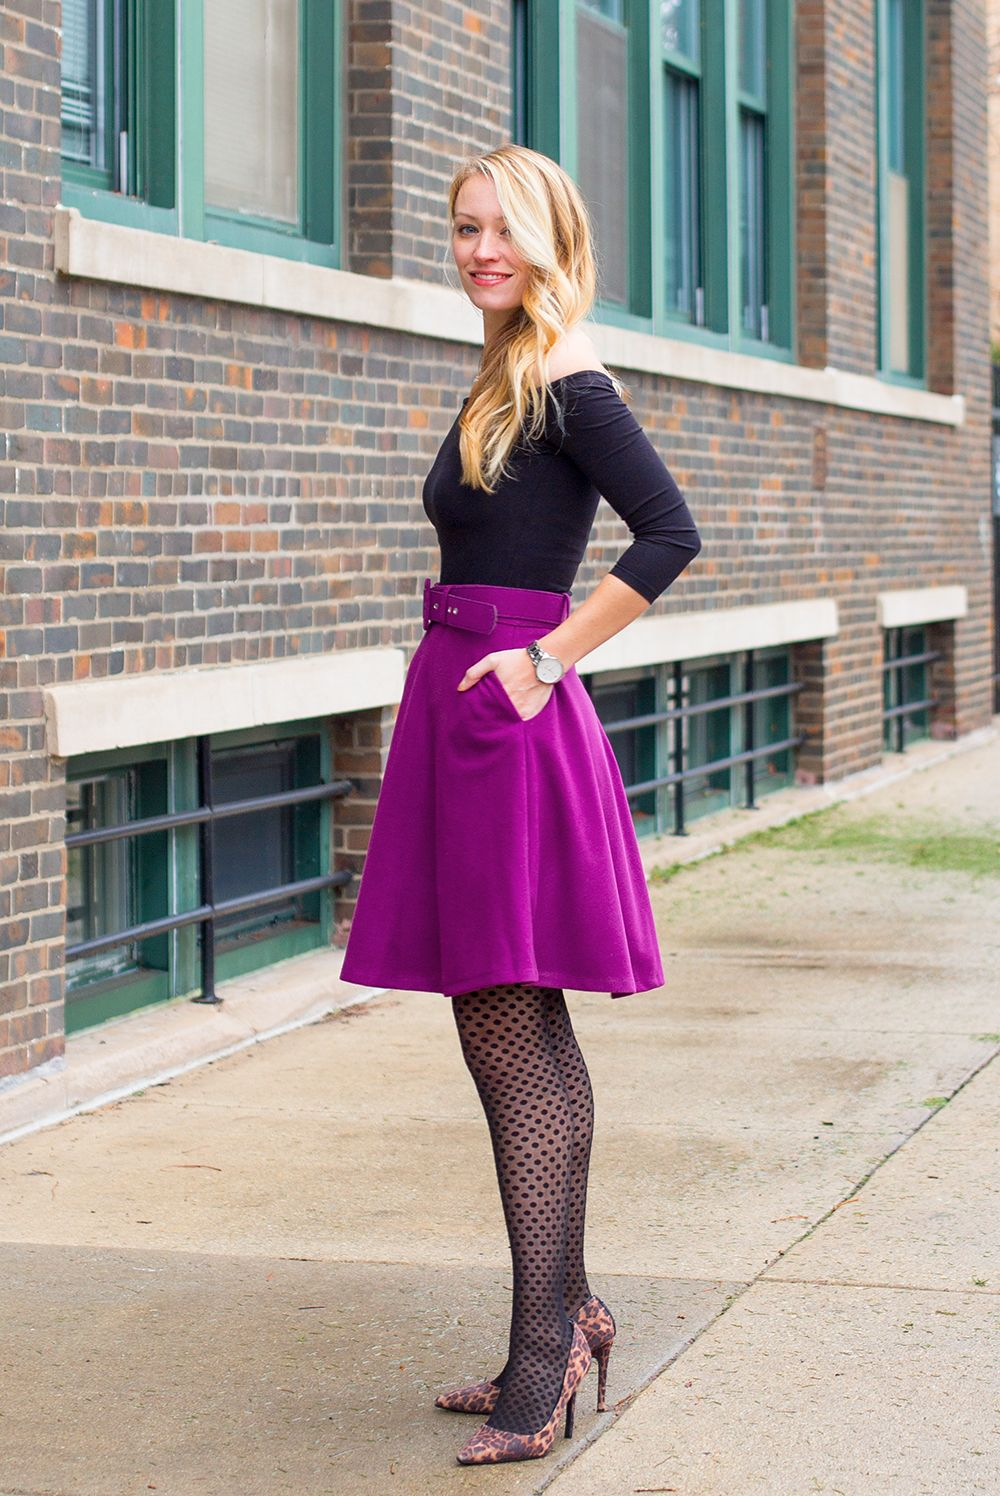 skirt – Rosegal (c o) top – H M (similar) tights – Hue pumps – Target  (similar) watch – Kate Spade earrings – Kenneth Jay Lane necklace – The  Limited ... 0880a2f24